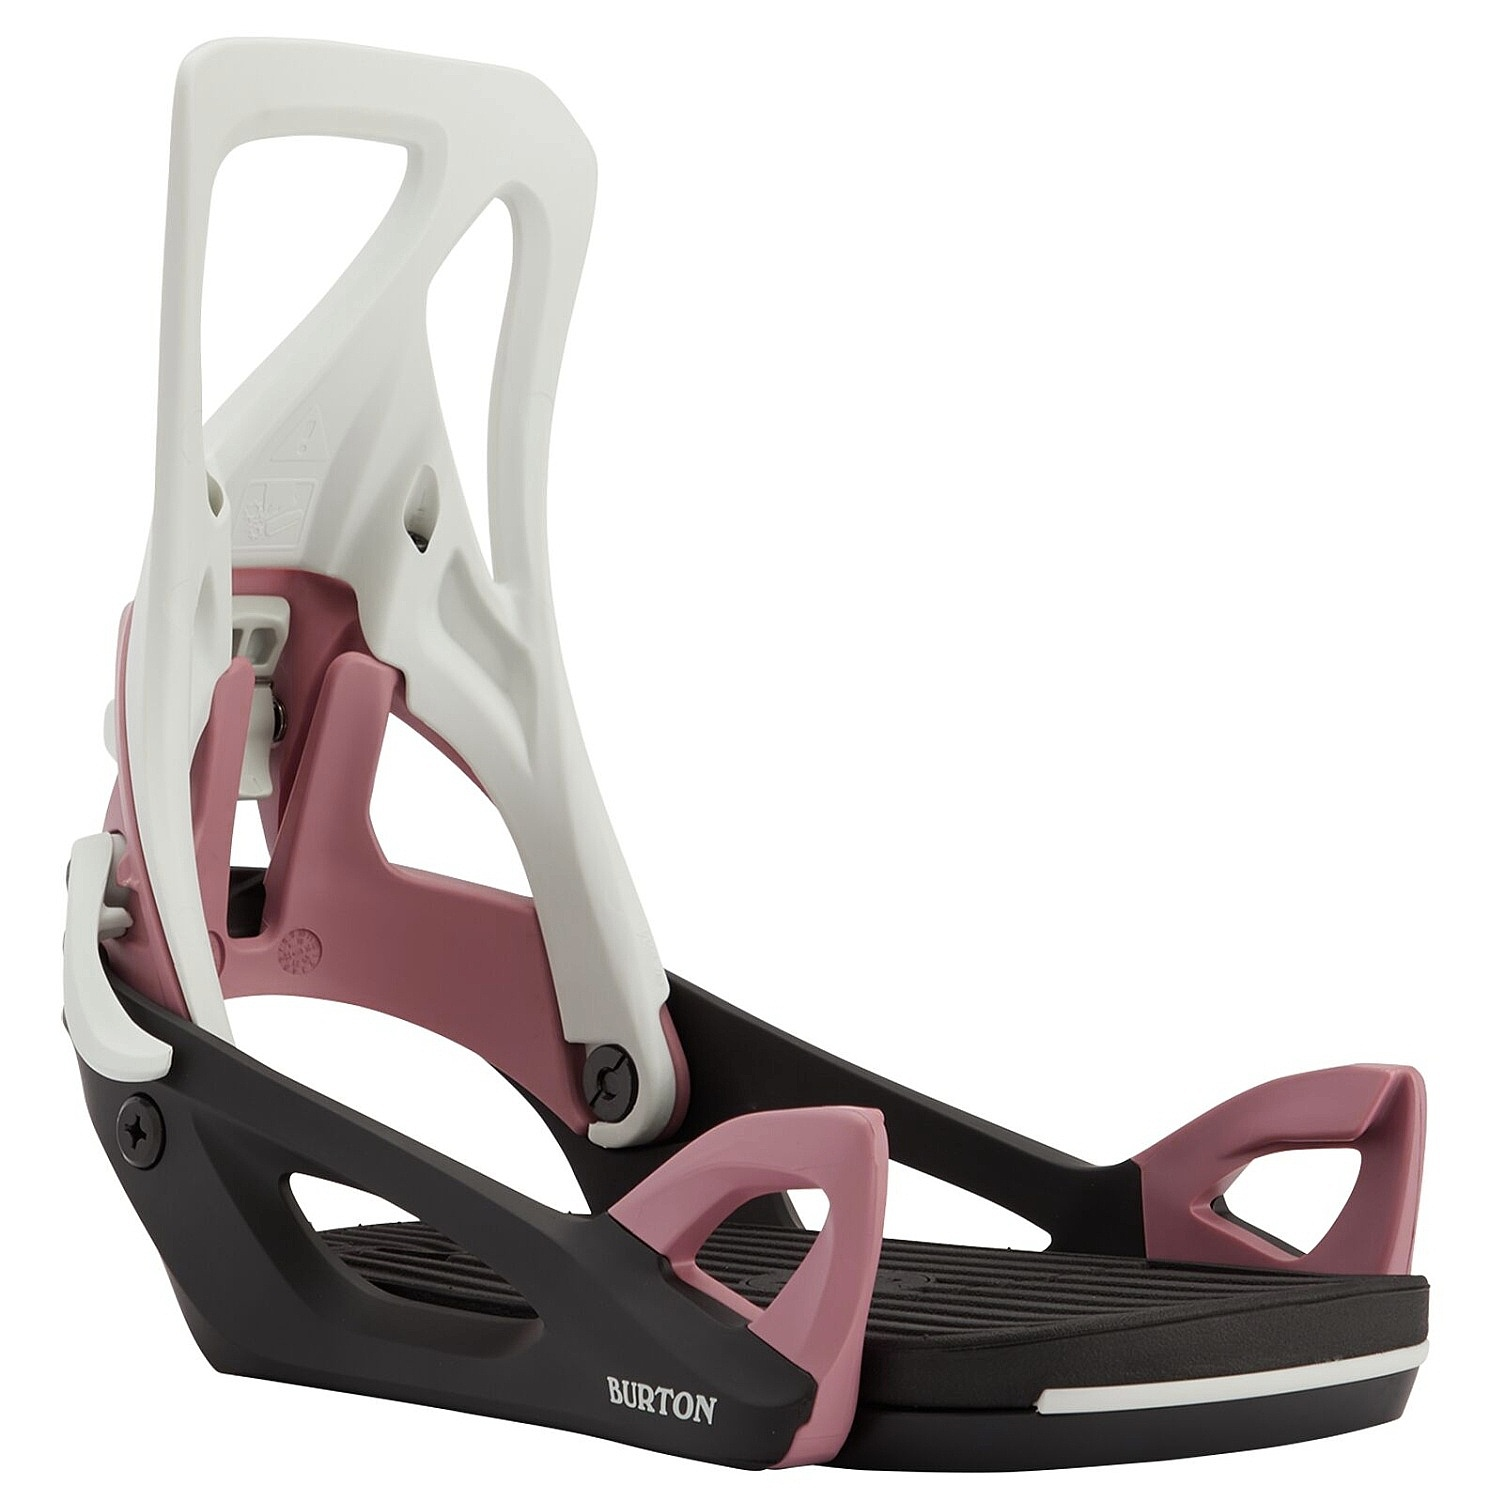 Burton Step On Gray/Black/Rose M 20/21